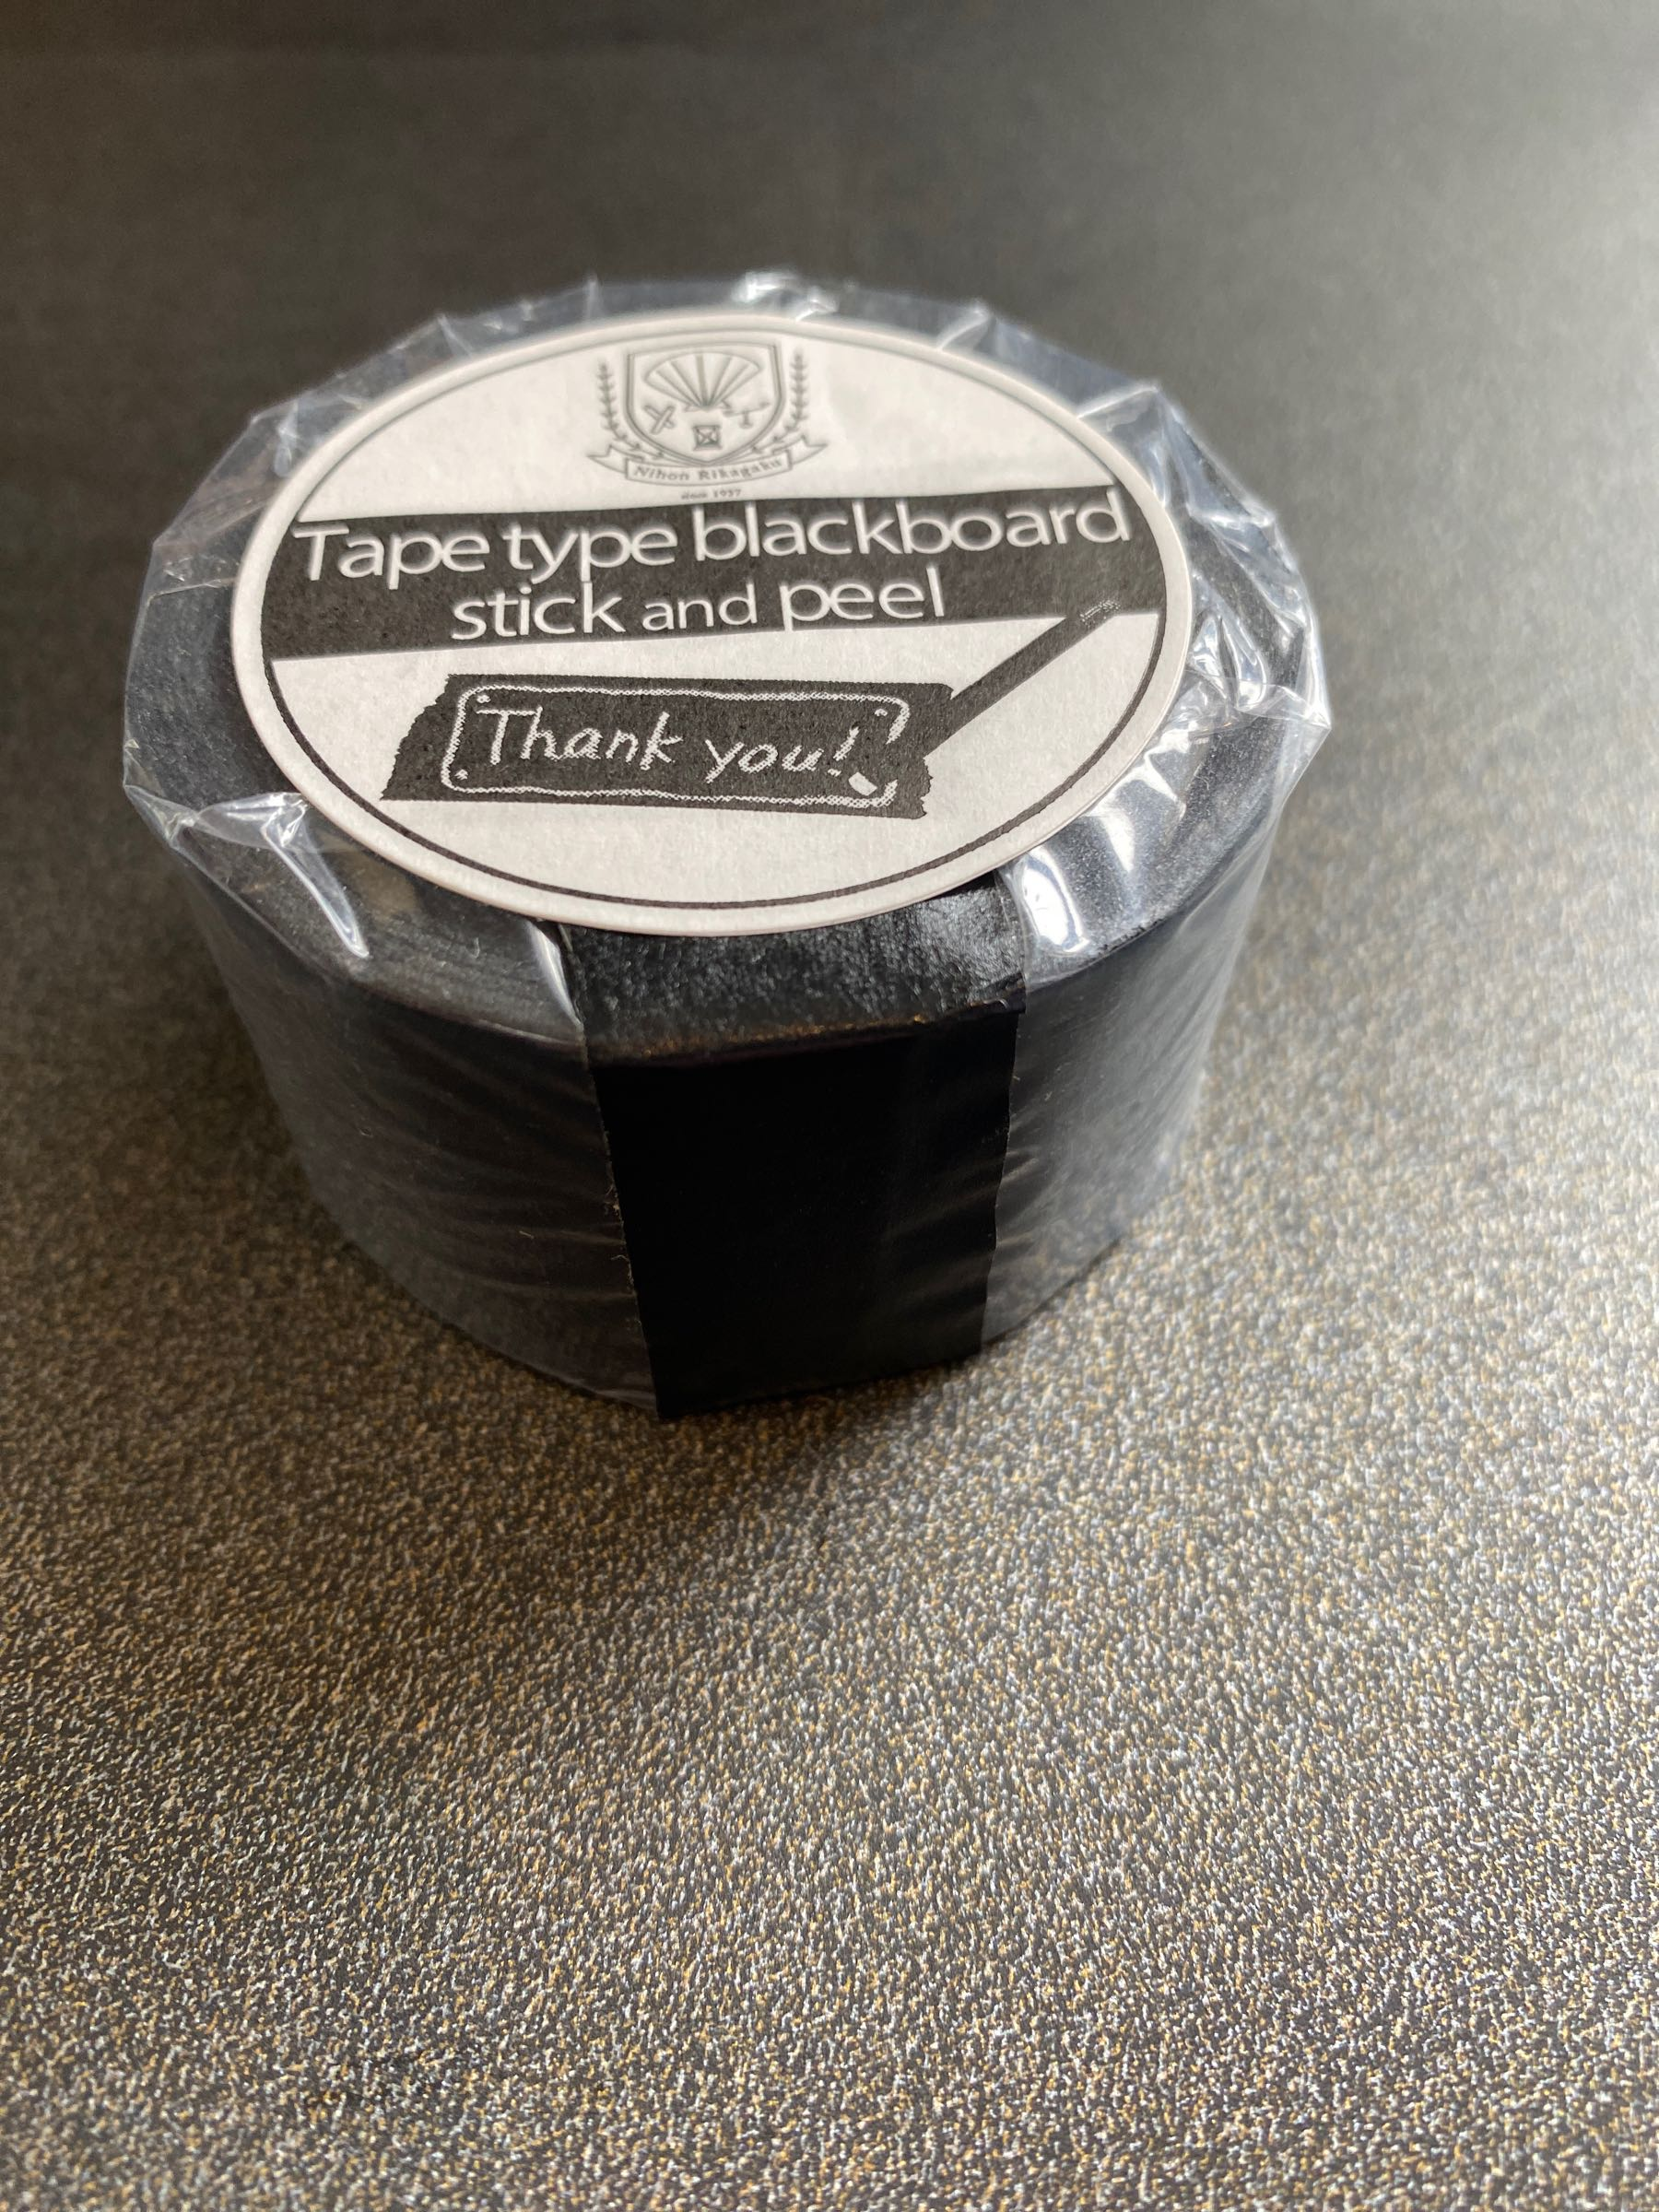 Kitpas - Blackboard tape black 30mm